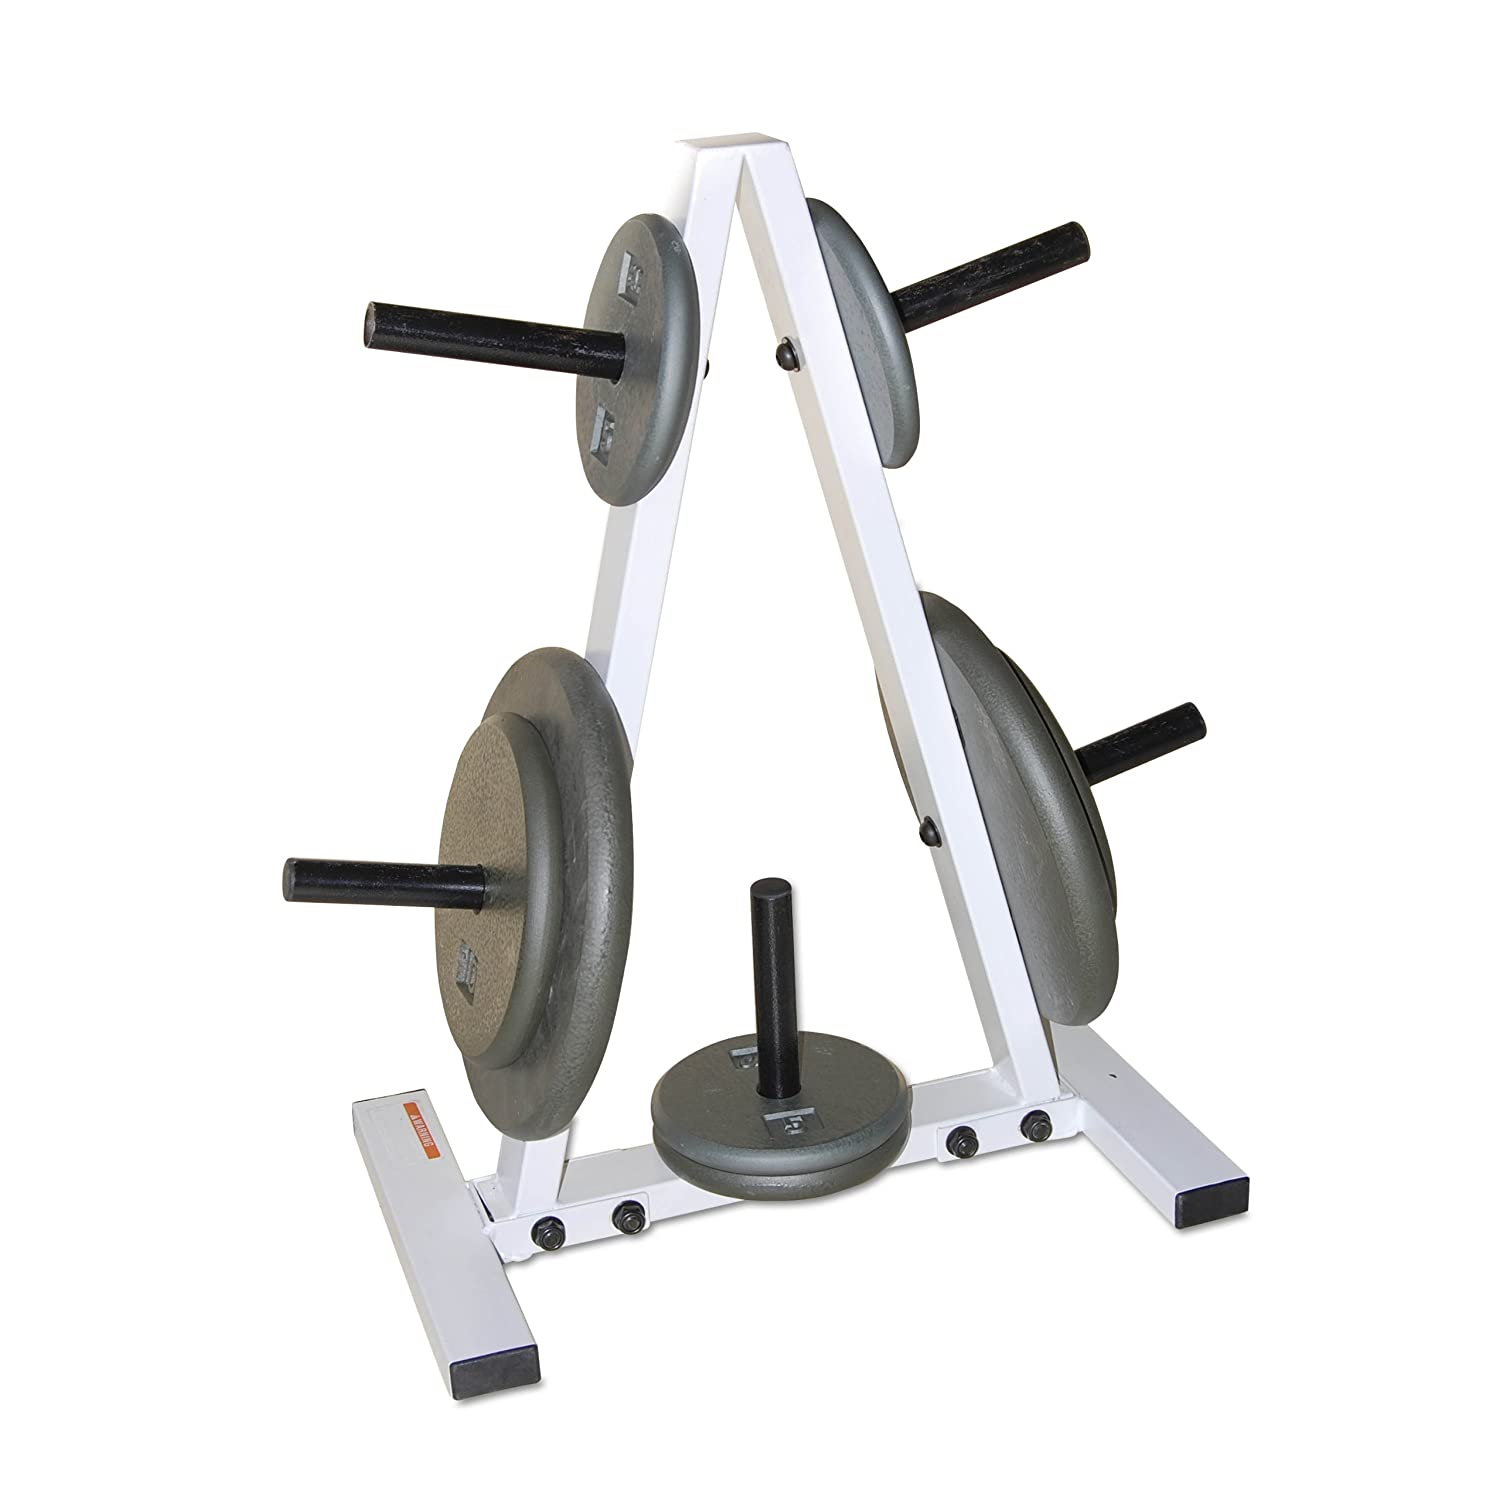 Amazon.com  CAP Barbell Standard Plate Rack Black and White 1   Plate Trees  Sports u0026 Outdoors  sc 1 st  Amazon.com : weight plates rack - pezcame.com